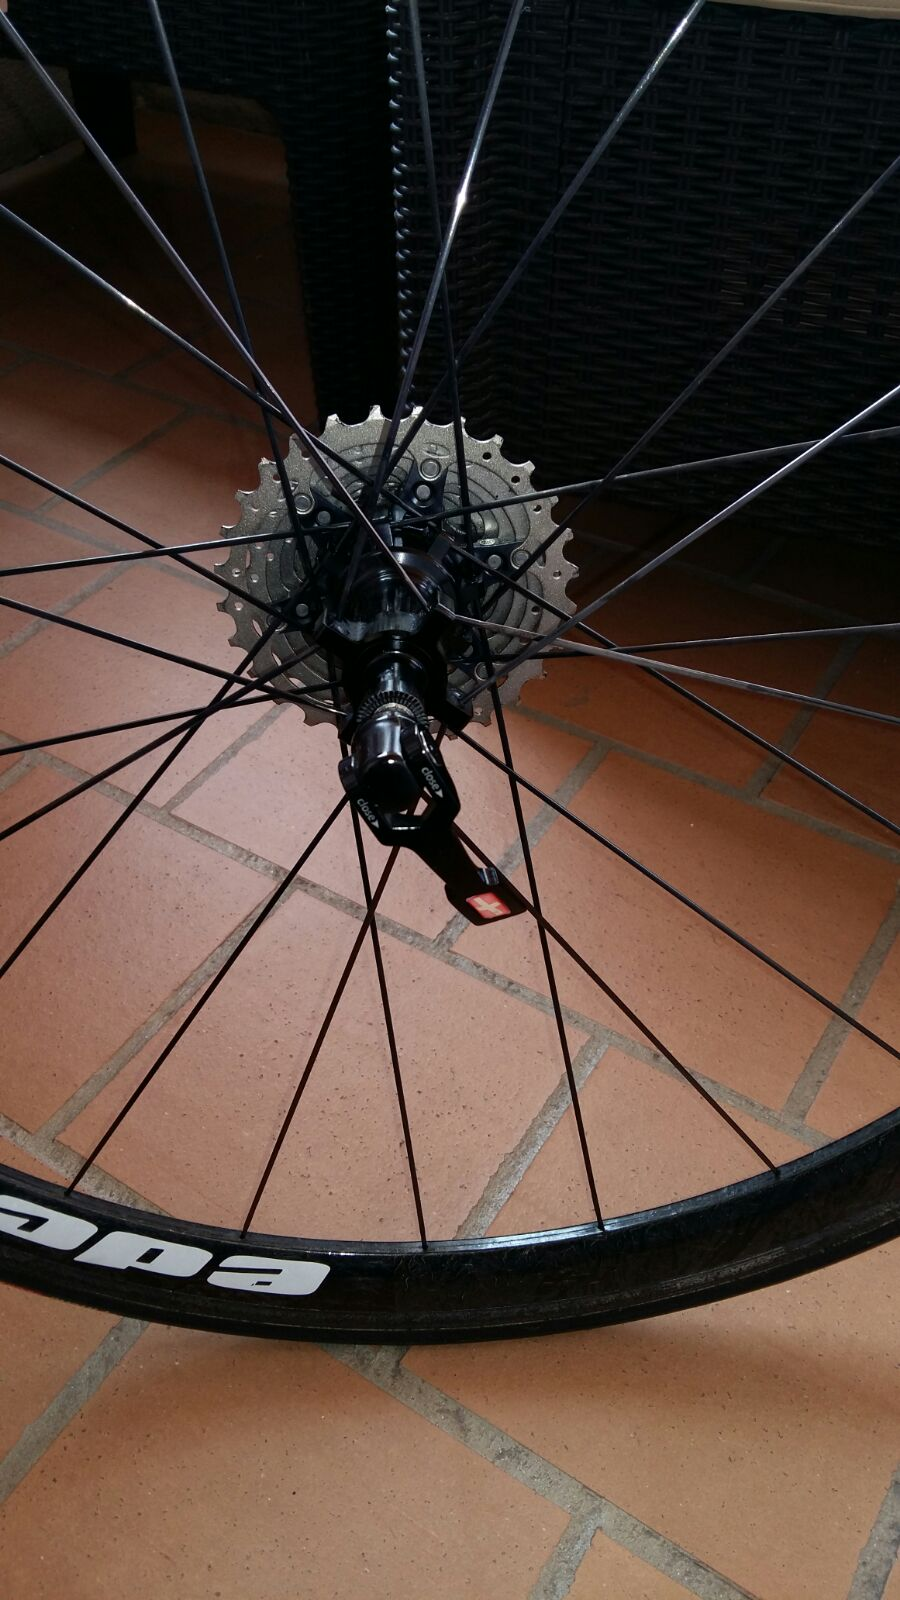 WhatsApp Image 2017-06-04 at 11.26.57